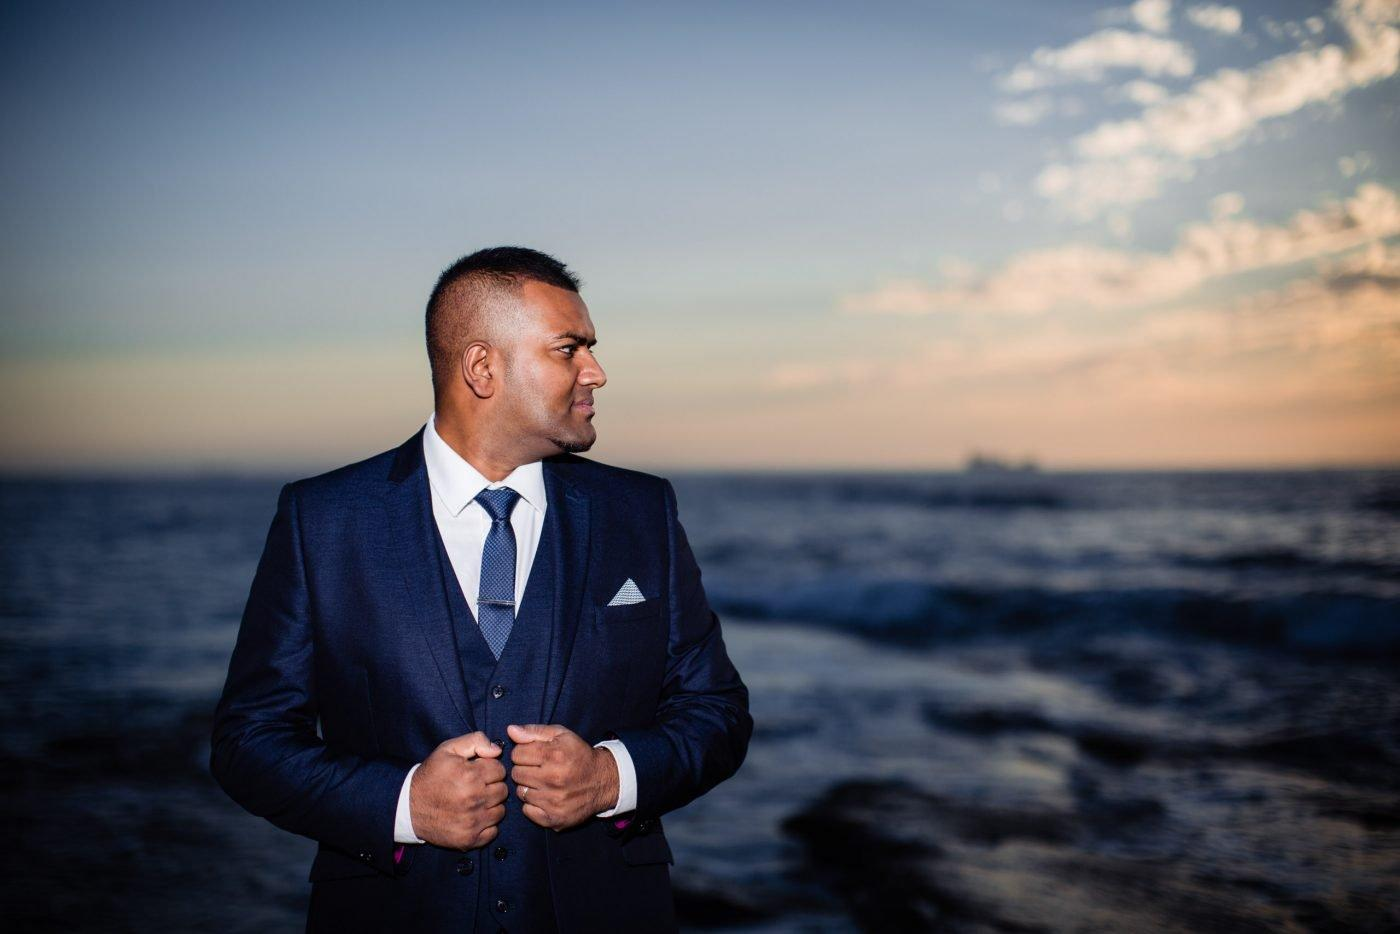 Groom portrait on Agadir's beach